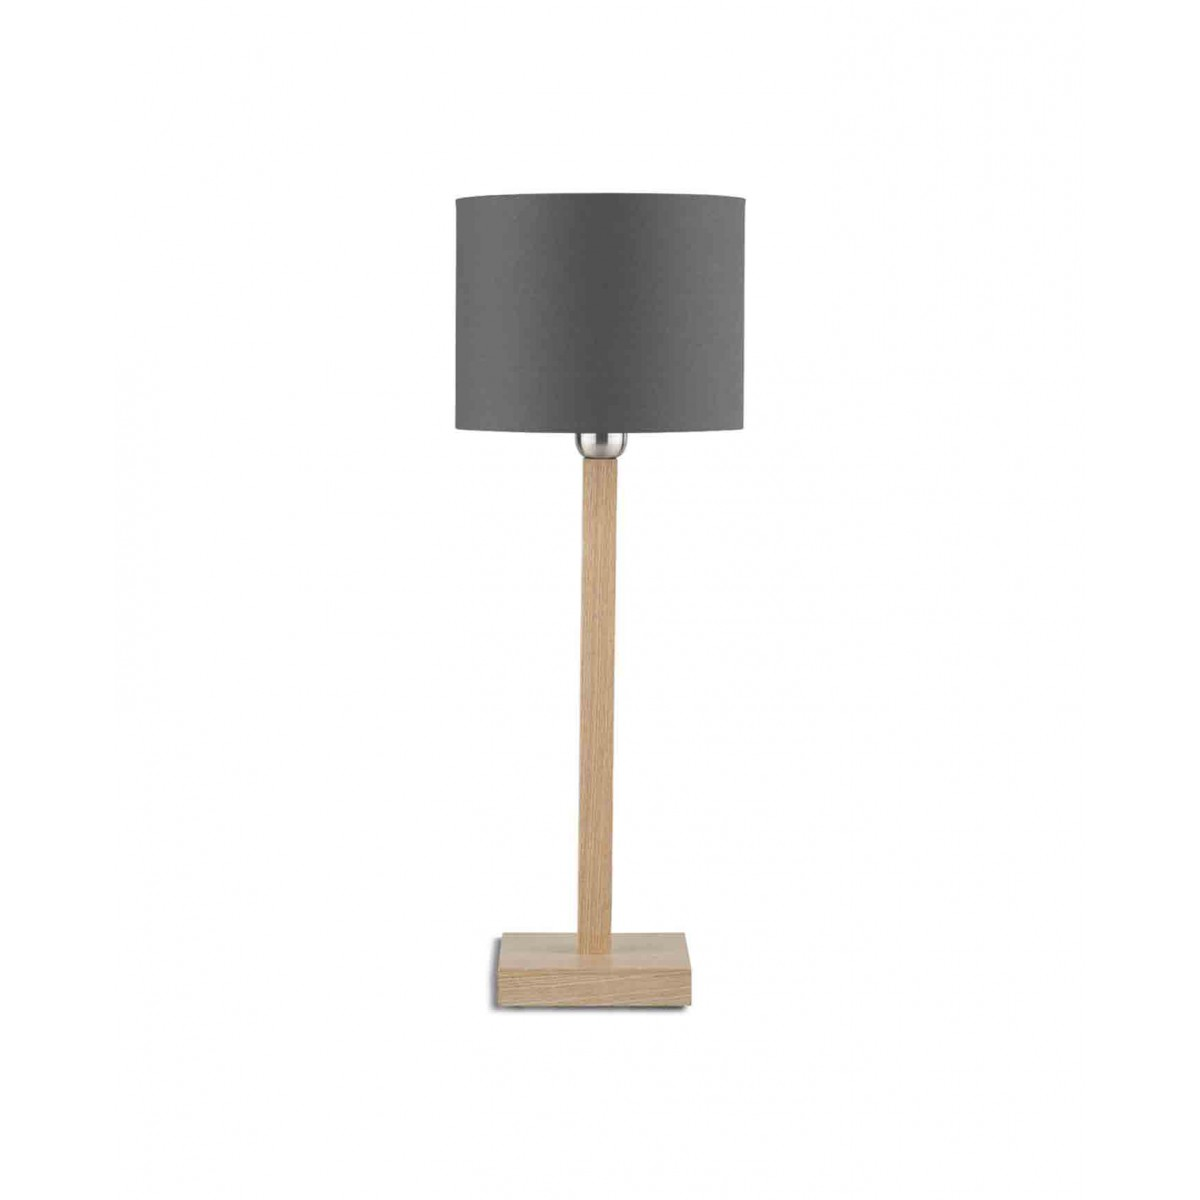 lampe d co en bois et abat jour de couleurs kobe par its. Black Bedroom Furniture Sets. Home Design Ideas